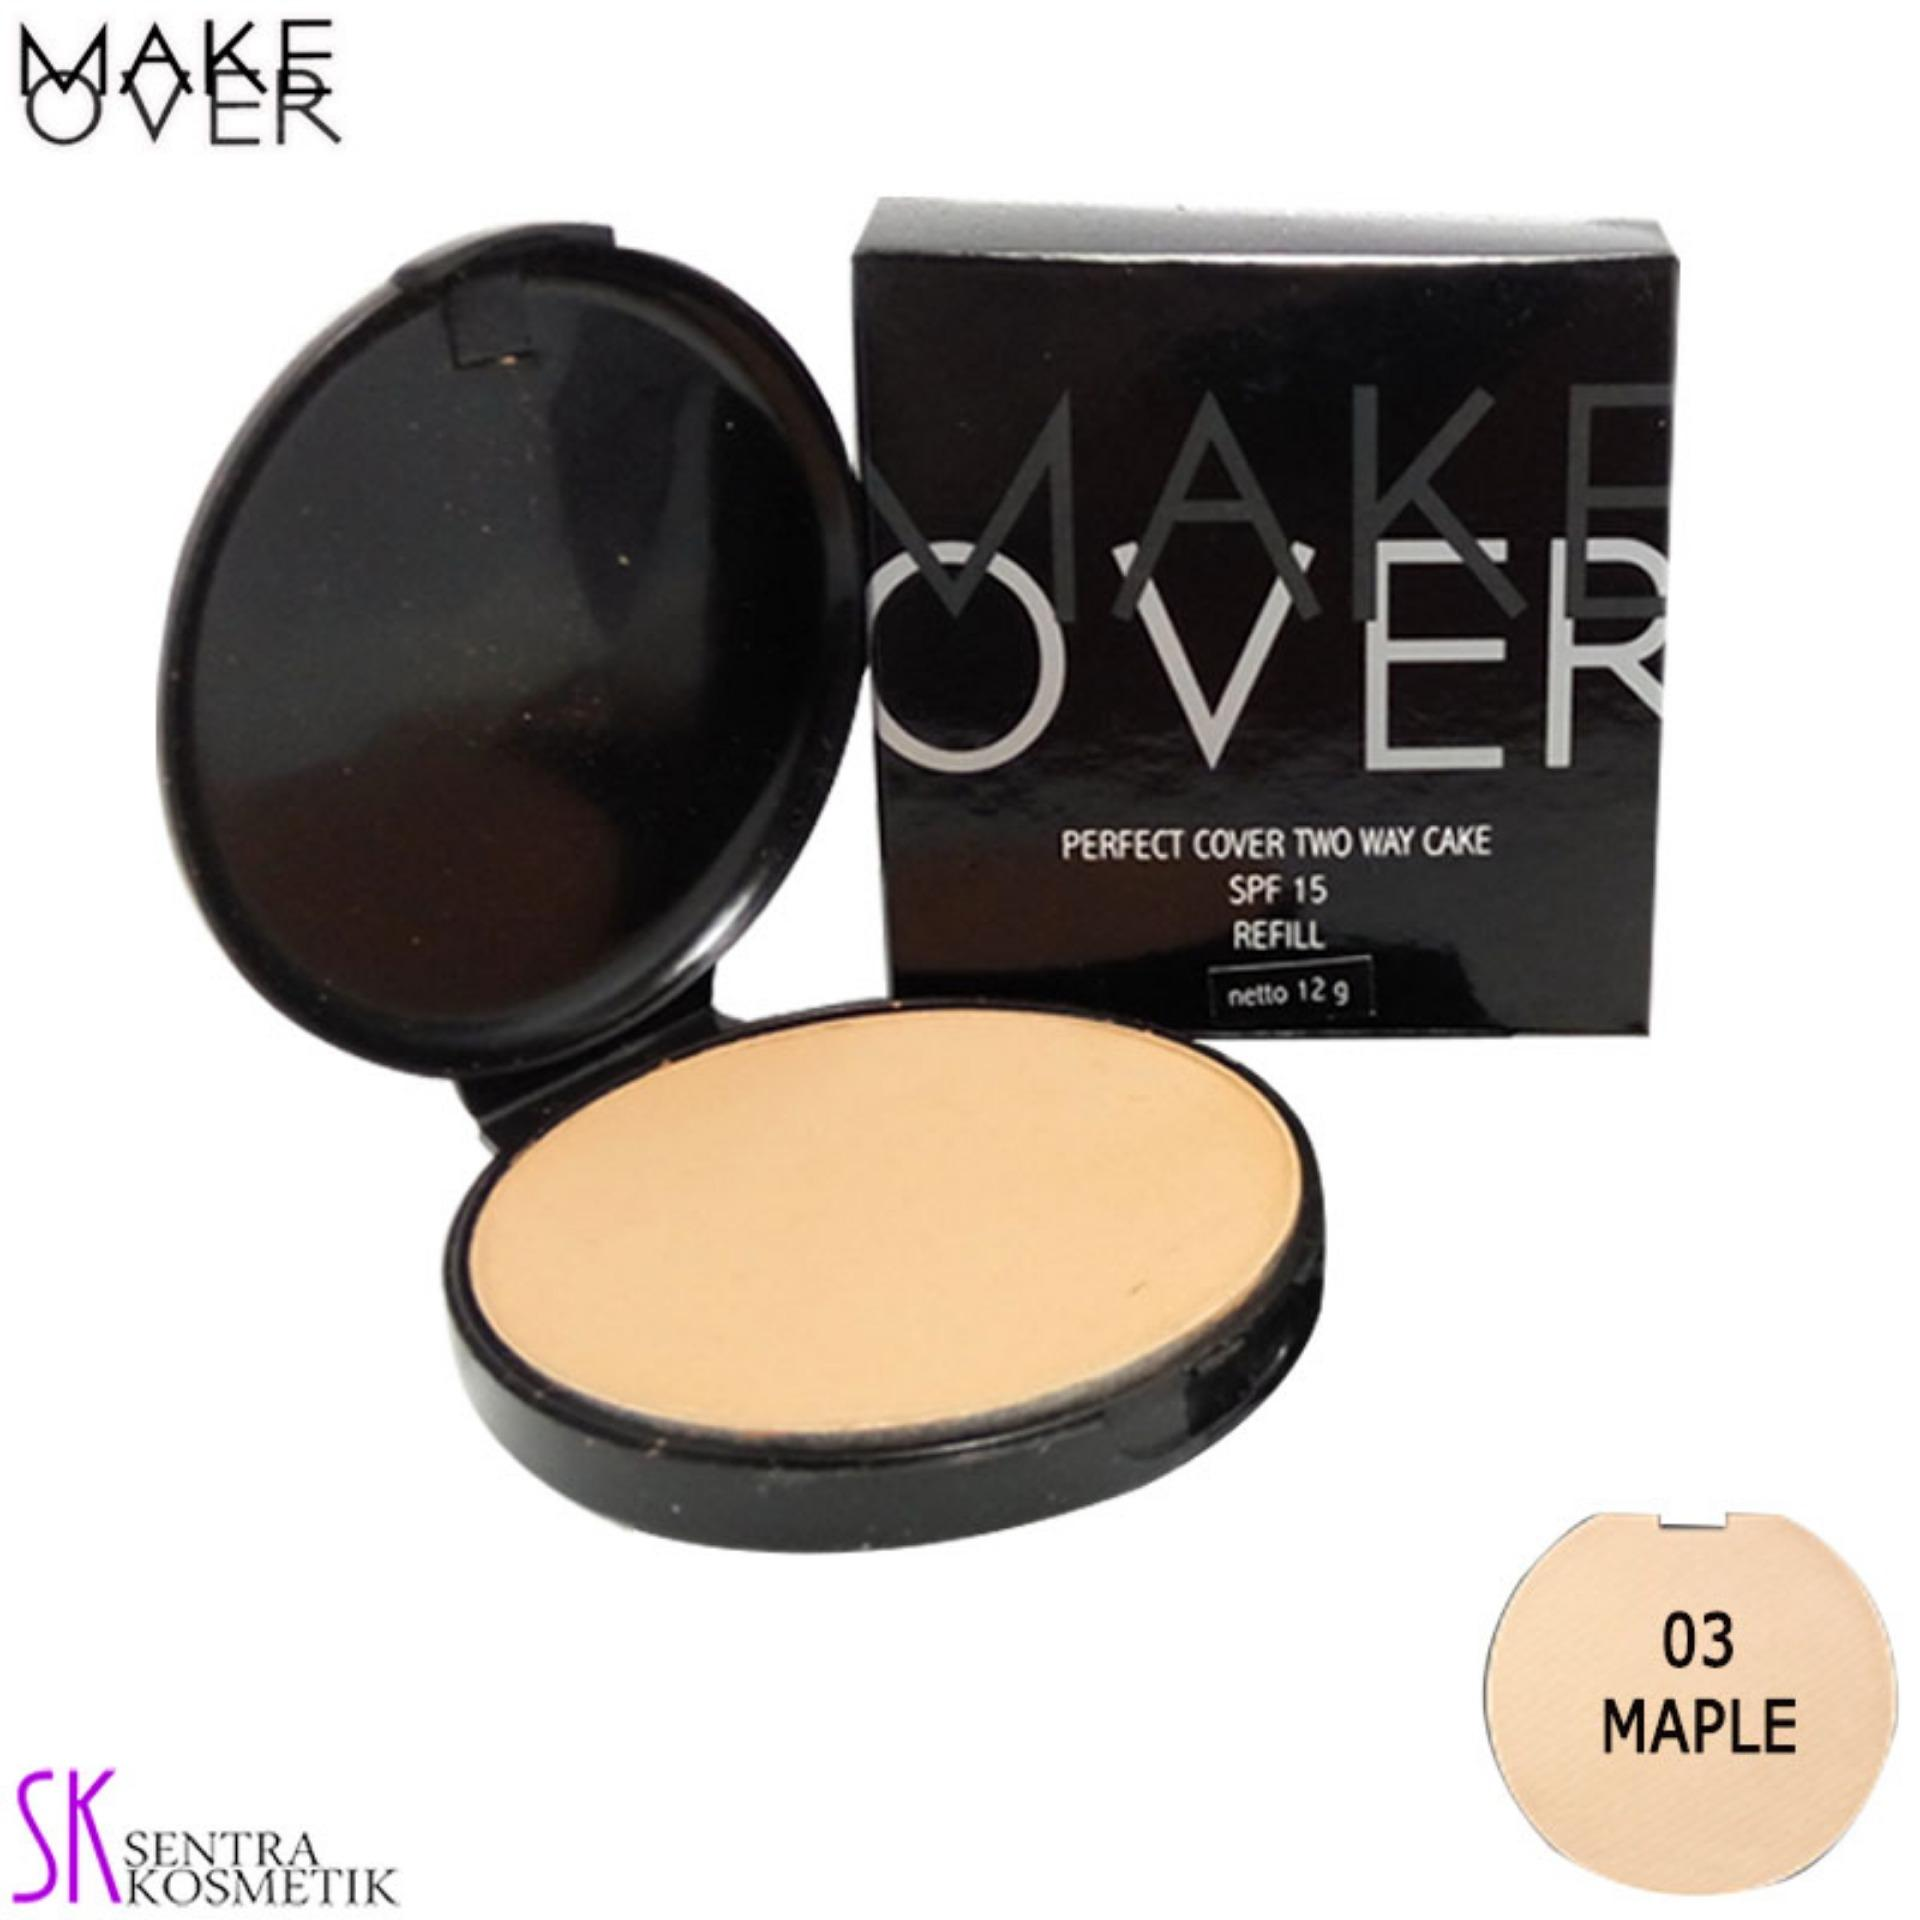 Make Over Jual Produk Make Over Terlengkap Lazada Co Id